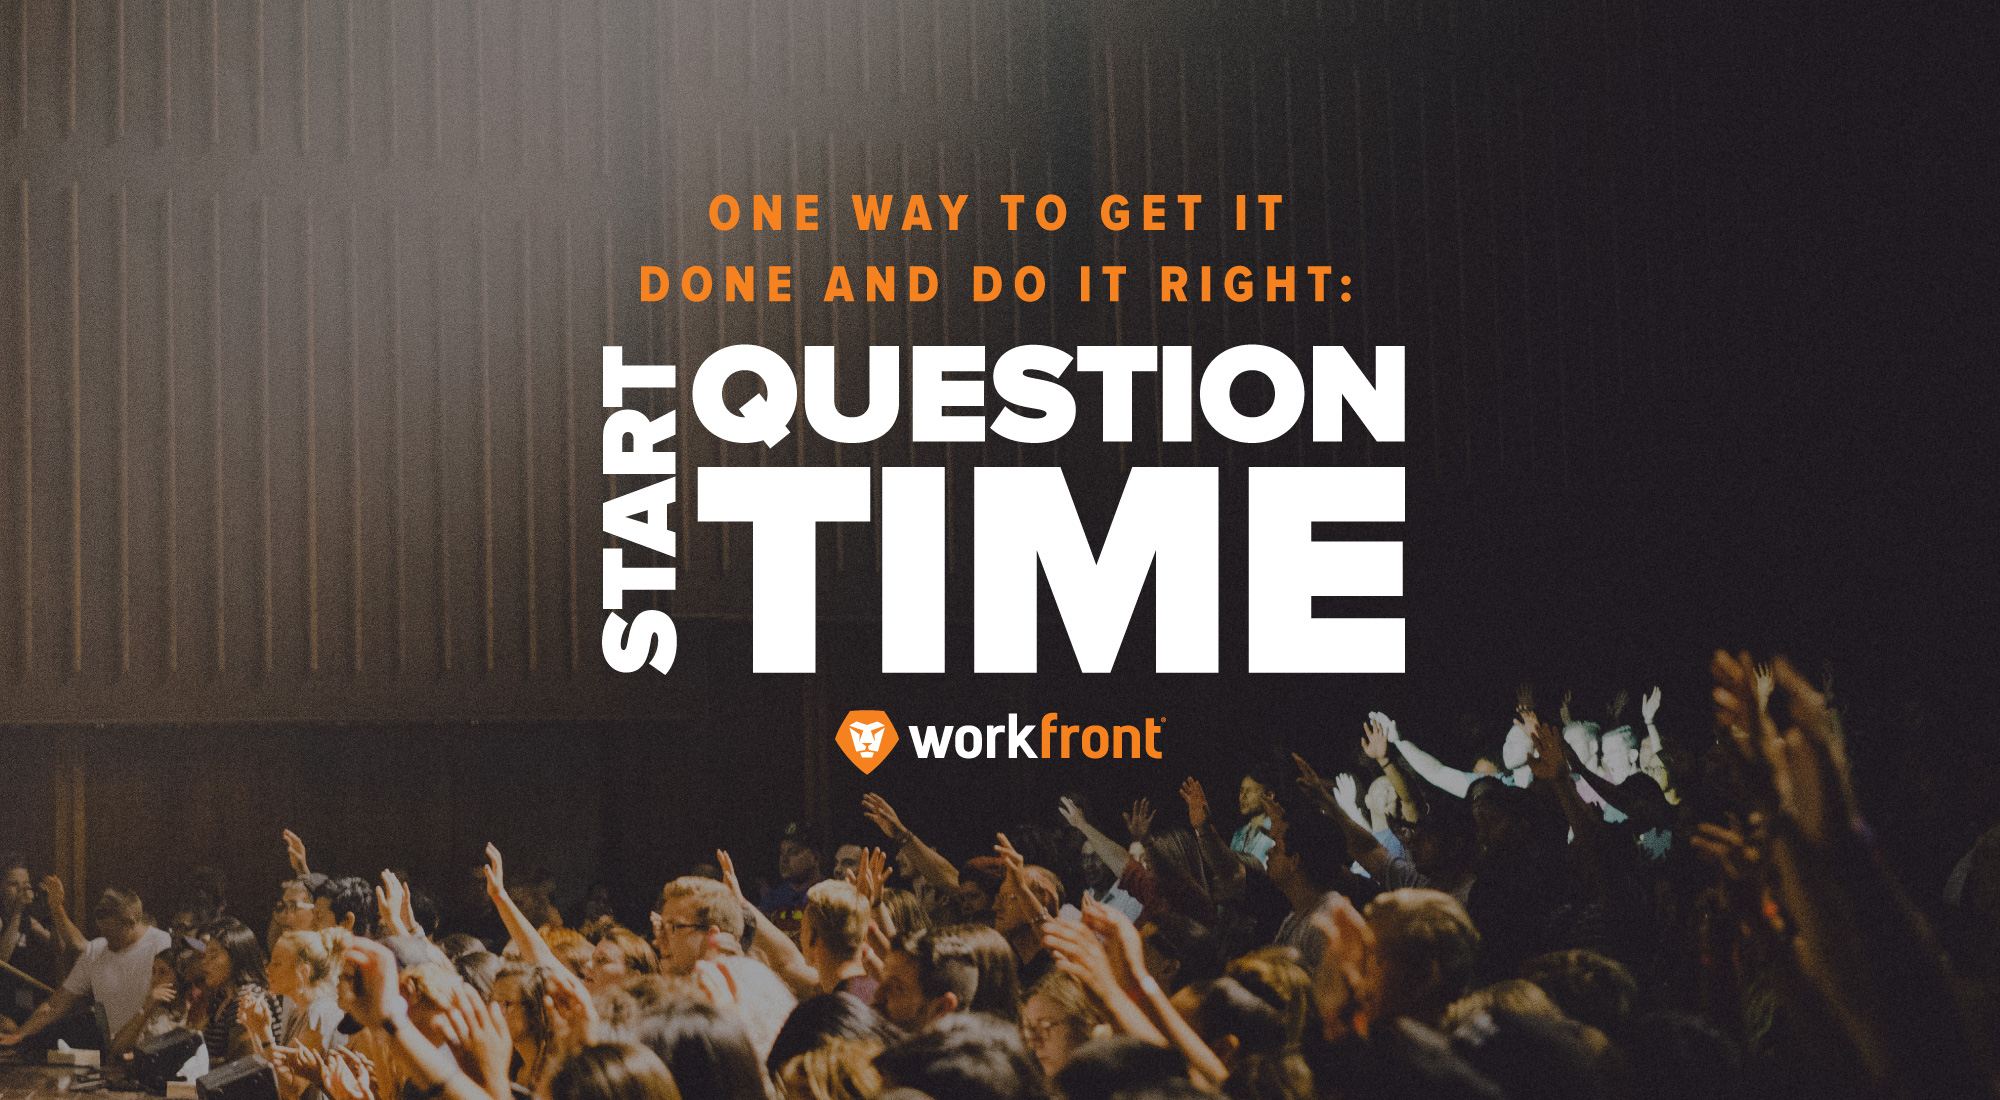 get it done, do it right implement question time